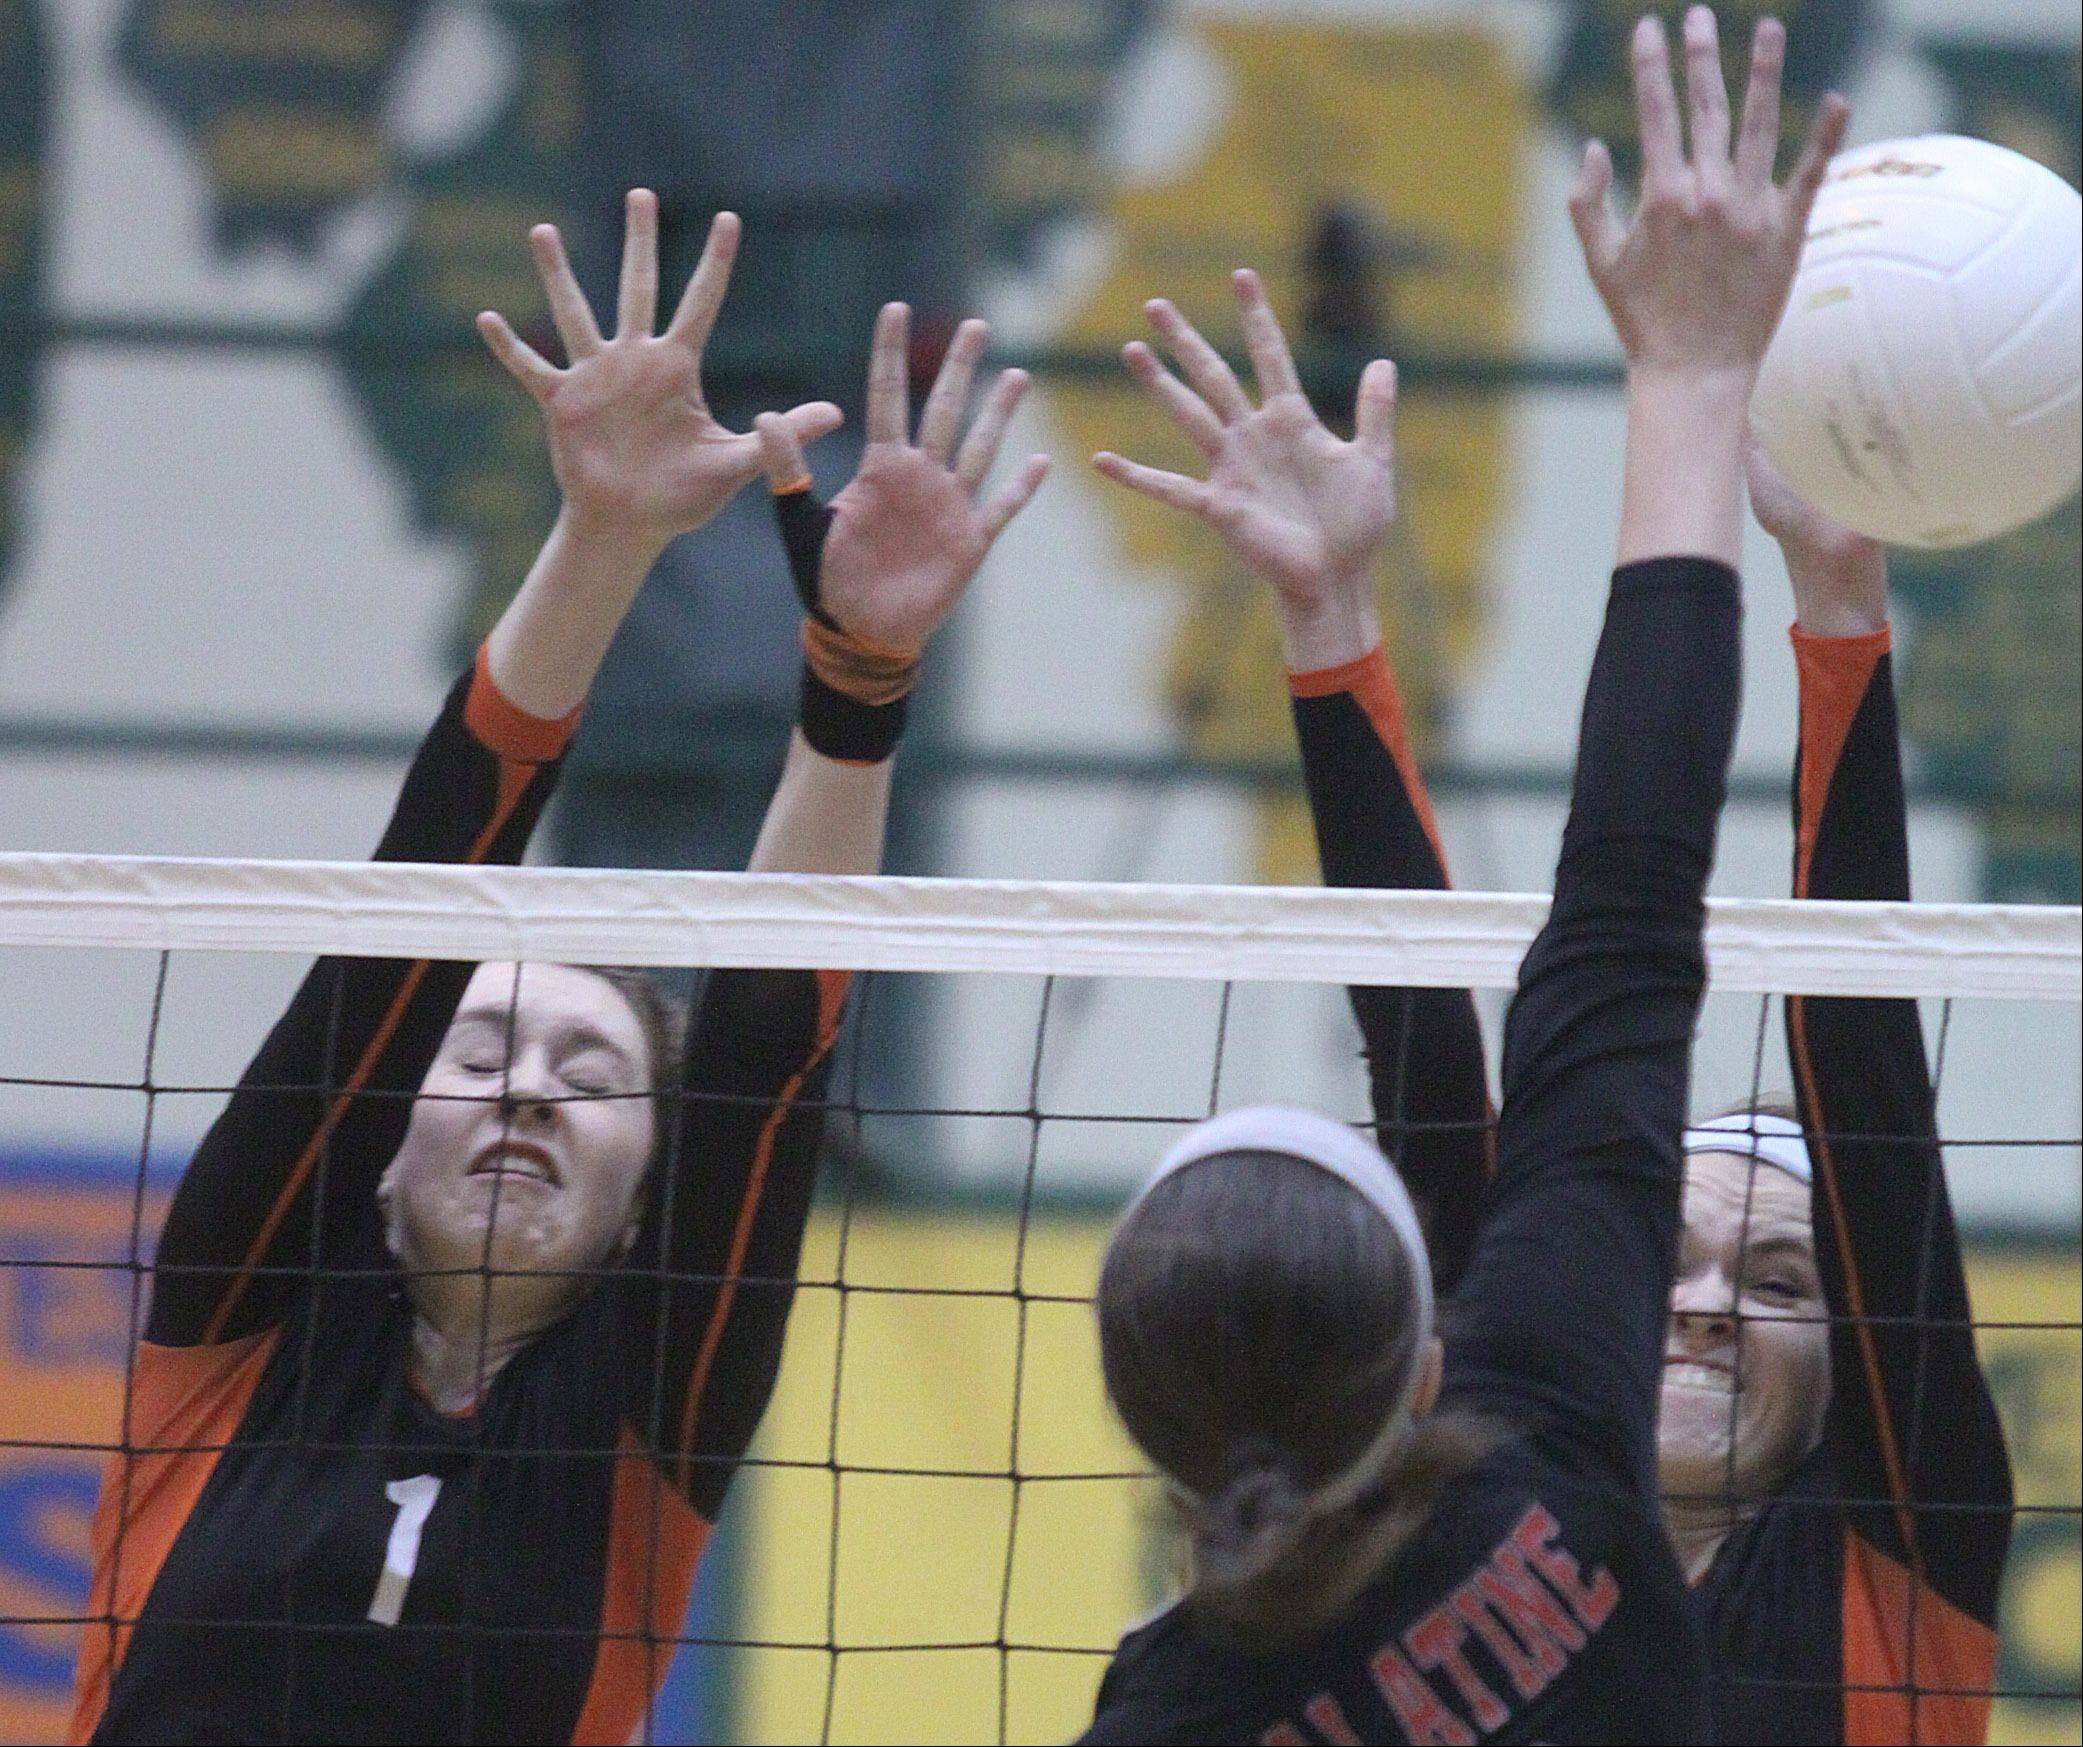 Libertyville's Alex Basler, left, and Rhiannon Prentiss, right, block Palatine's Val Soderstrom, center, during sectional title play at Fremd on Thursday night.